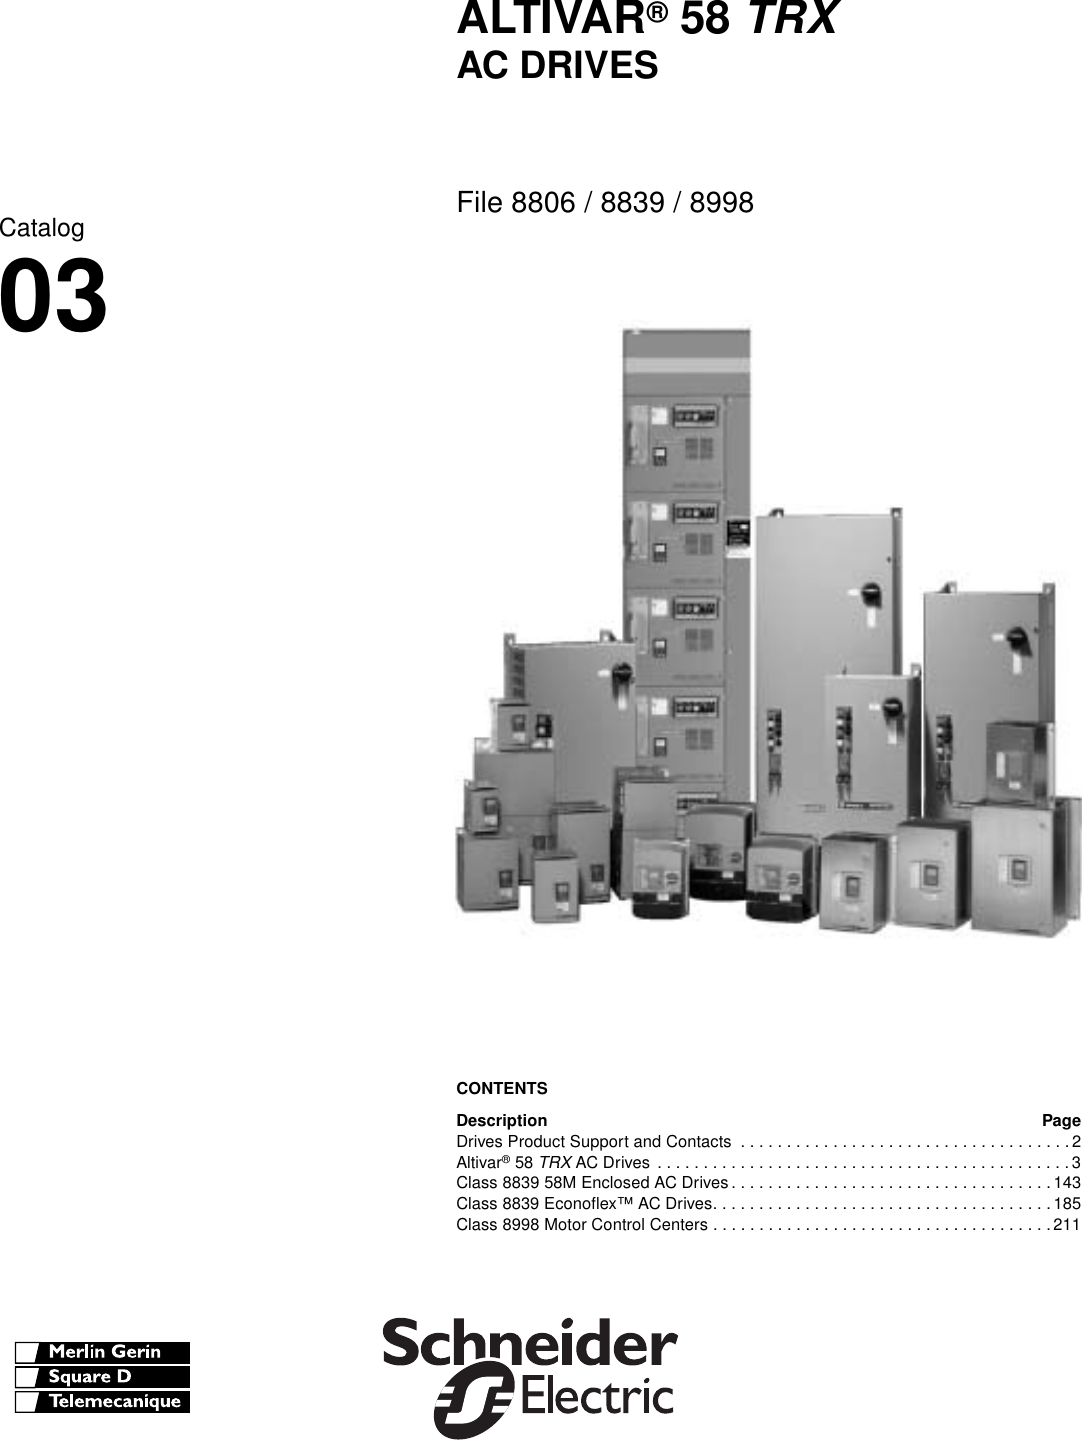 Schneider Electric Altivar 58 Trx Users Manual 8806ct9901 Mag Ic Contactor Wiring Diagram In Addition Car Diagrams Pdf